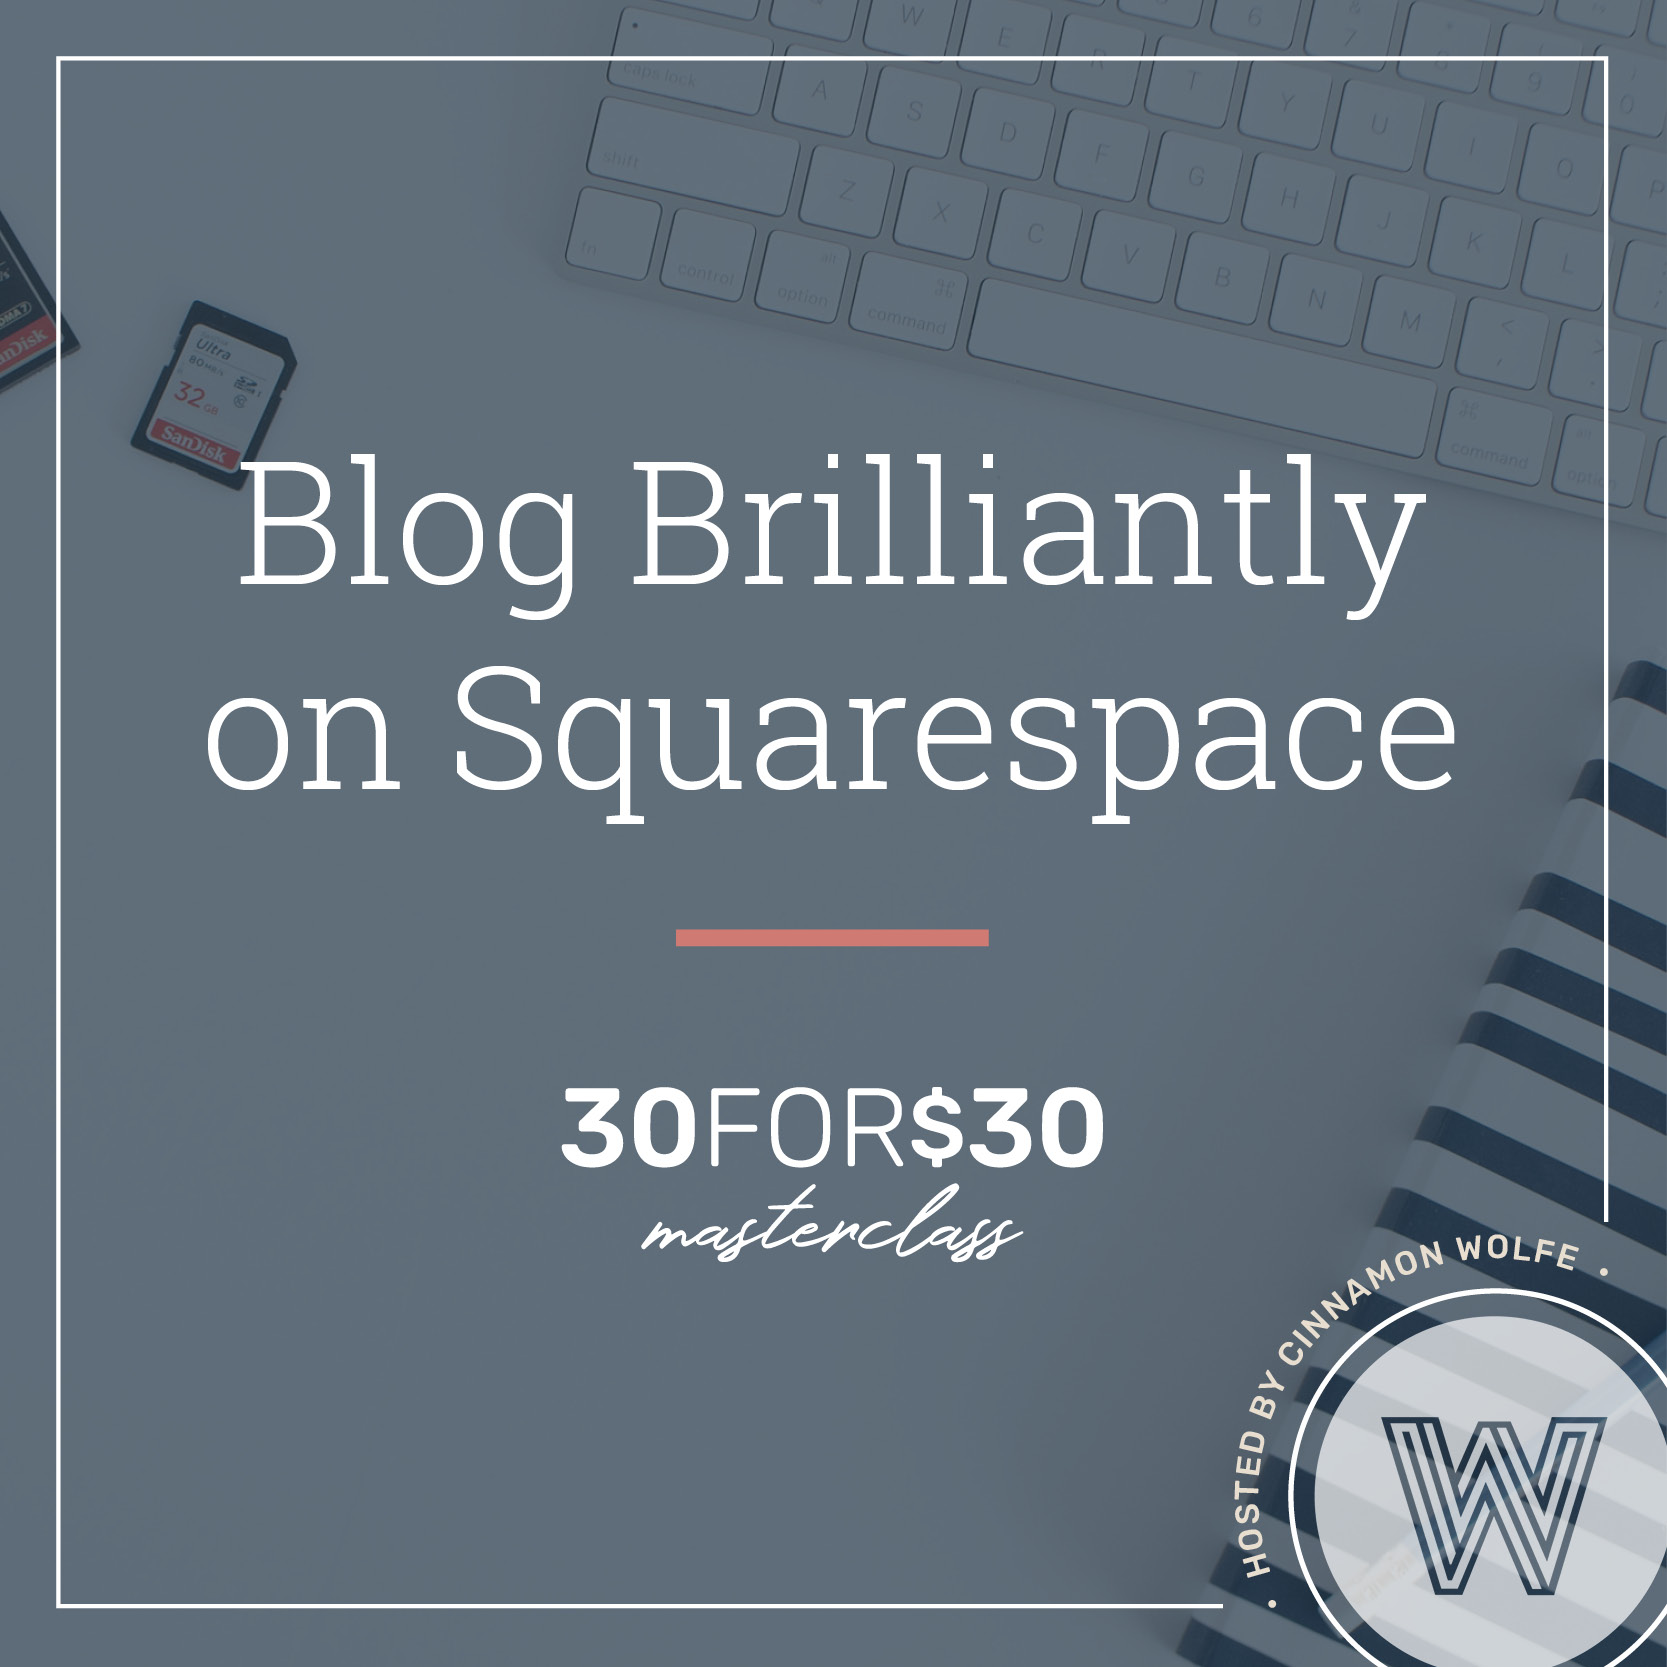 Blogging on Squarespace-30for30 shop graphic.jpg